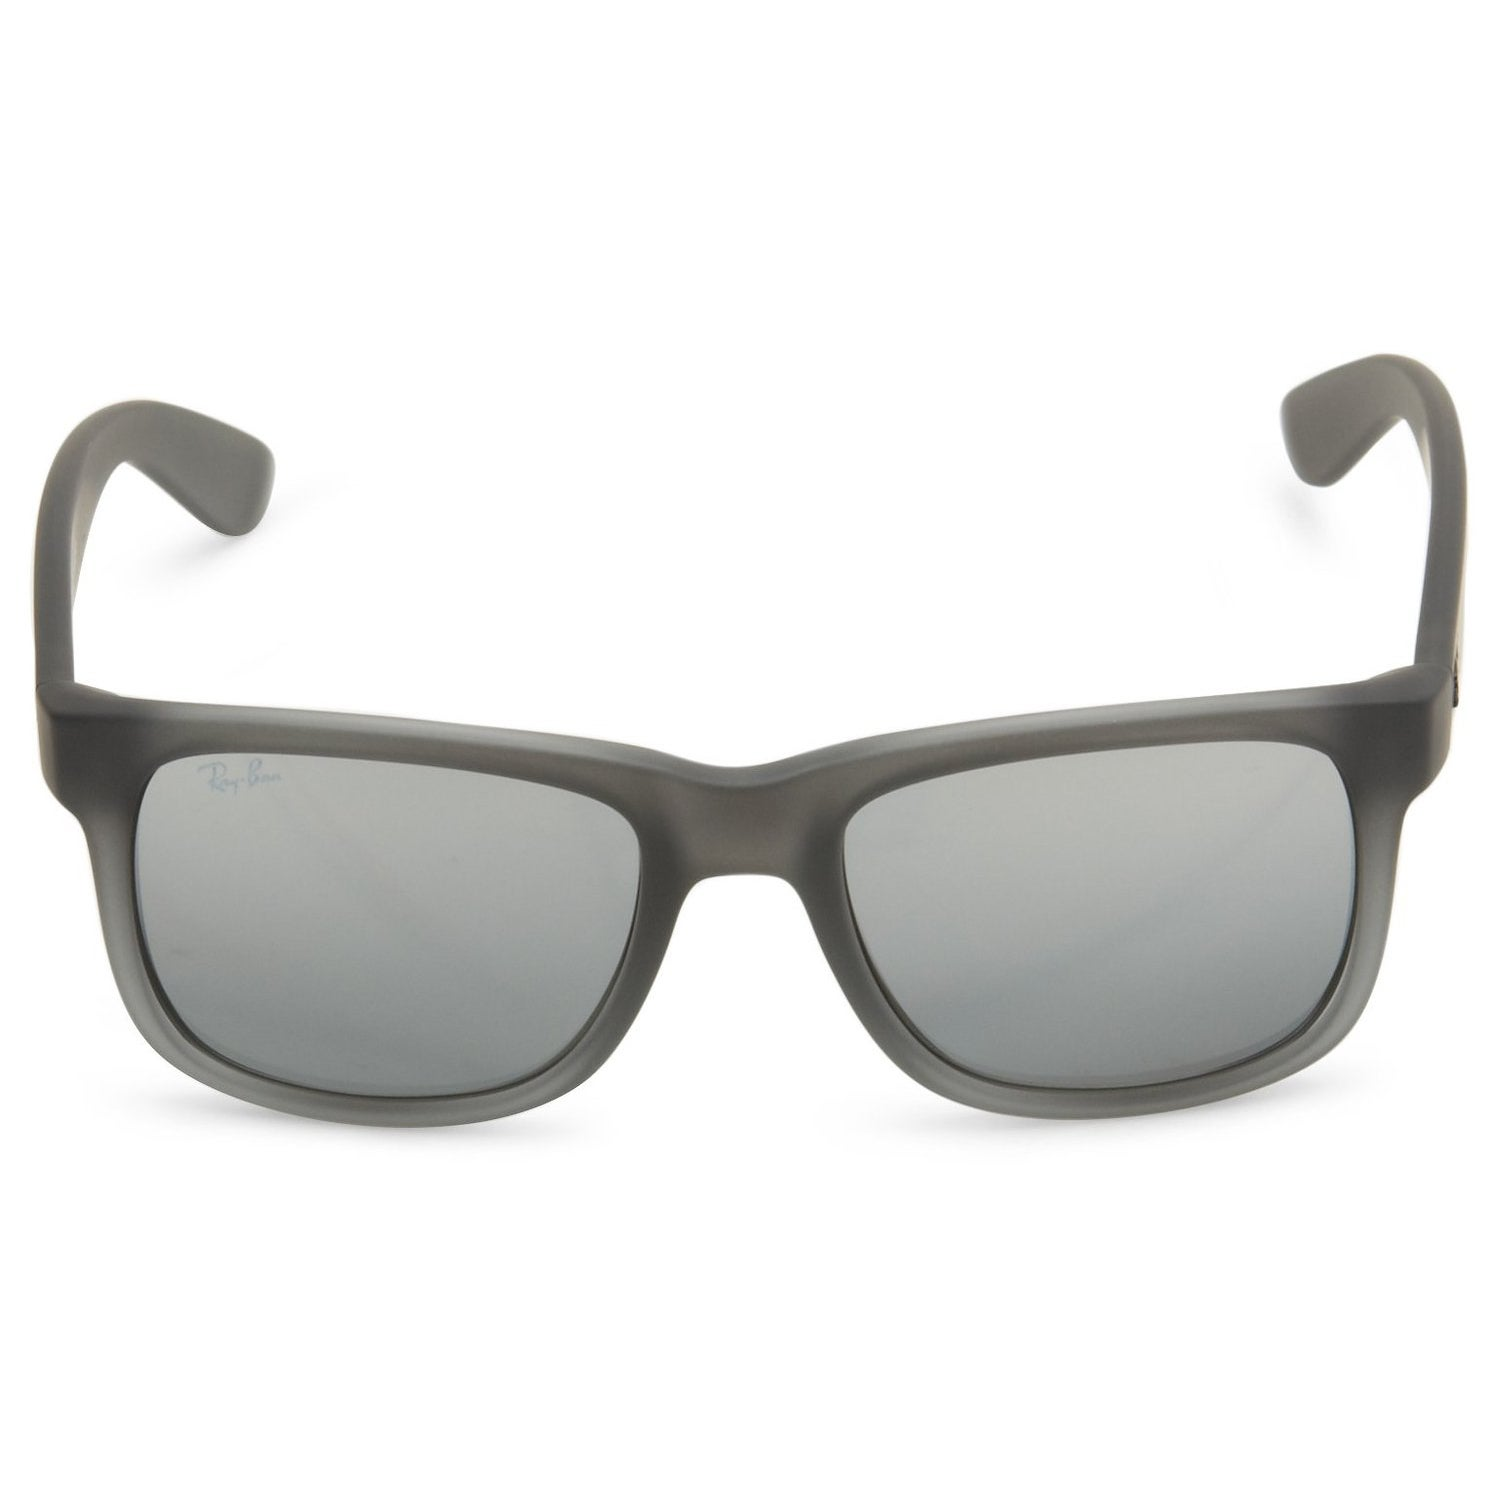 b34d7dff83 Shop Ray-Ban Justin Wayfarer RB4165 Unisex Gray Frame Silver Gradient Lens  Sunglasses - Free Shipping Today - Overstock - 9231220